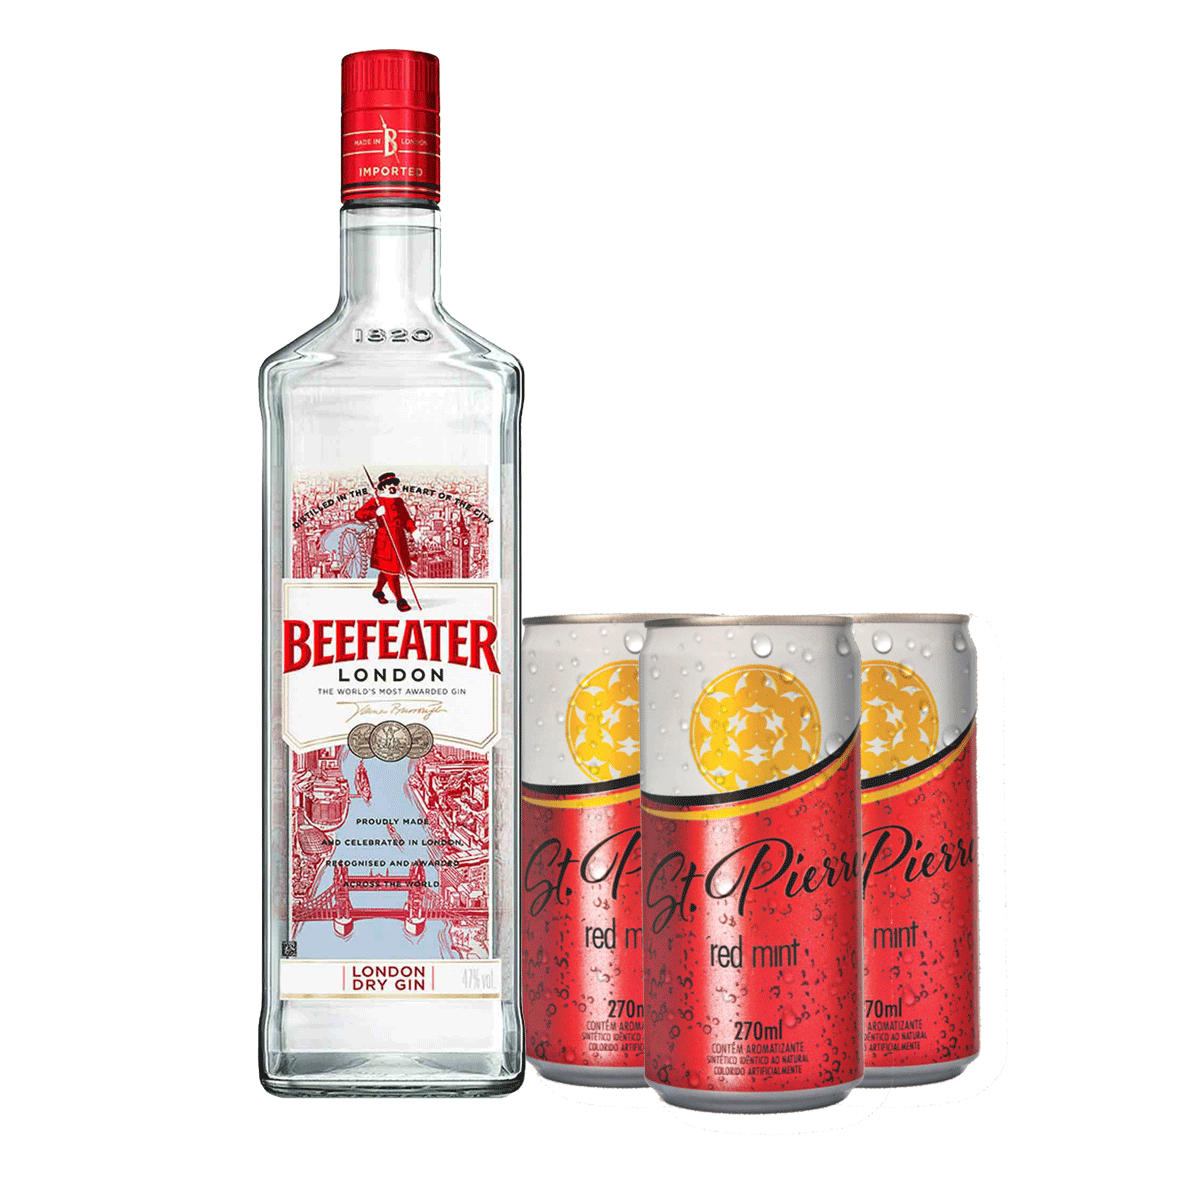 Kit Beefeater 750 ml + 3 St. Pierre Red Mint 270 ml